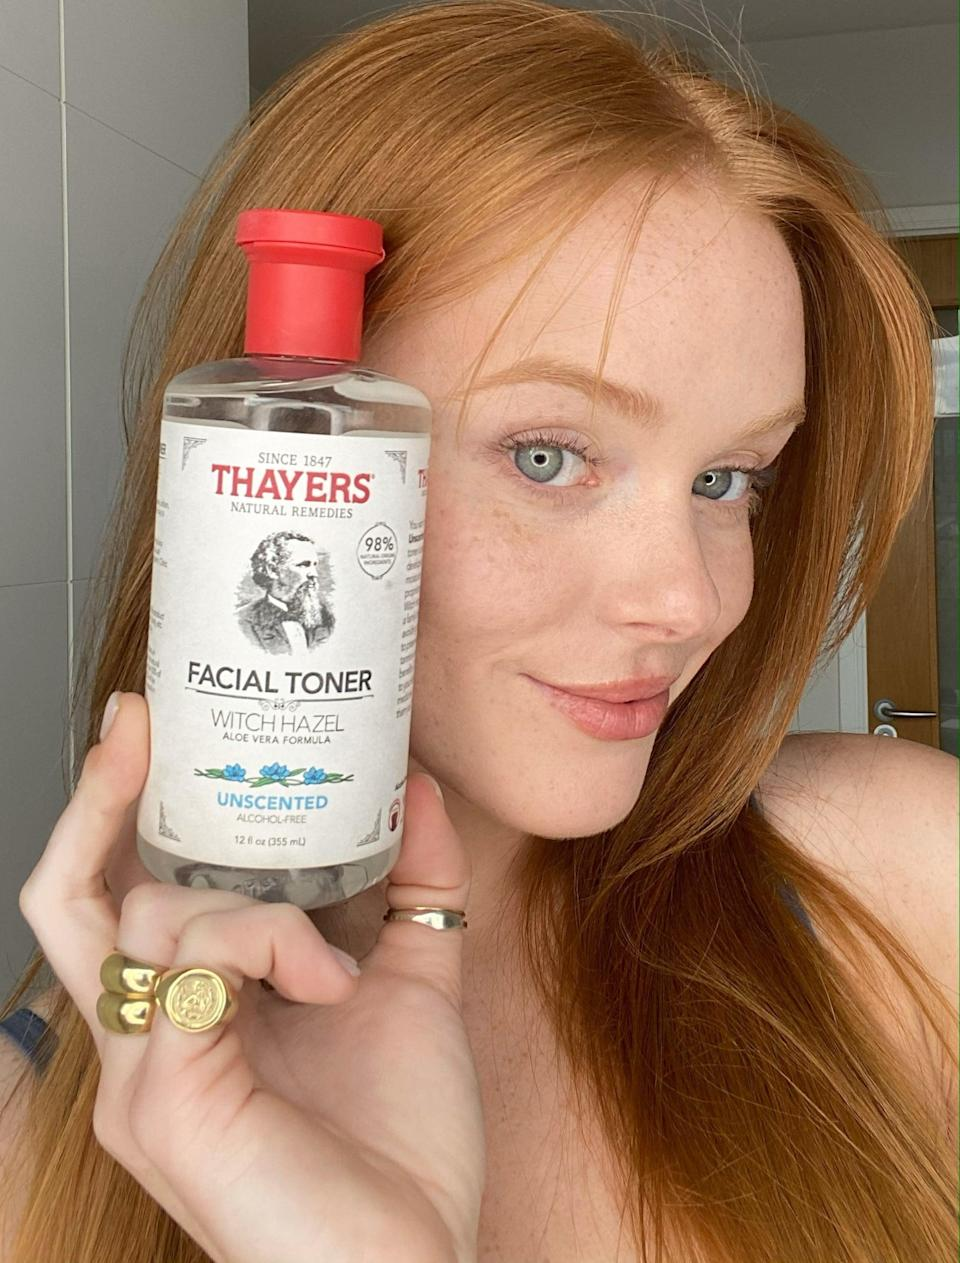 """<p>Cowen has changed up her skin-care routine a few times over the years but she's finally landed on a regimen that works for her. The one product that's been a constant is the <span>Thayers Witch Hazel Alcohol Free Unscented Toner</span> ($11), which her mom introduced her to at the age of 11.</p> <p>""""My mom, she's very big into skin care,"""" said Cowen. """"I think it was on my birthday. She was like, 'OK, it's your 11th birthday, it's time to look into skin-care stuff,' and I remember being so excited because I felt like I was becoming a woman.""""</p> <p>All these years later, she's partnered with the brand as an ambassador and it couldn't be a more perfect fit. It's her go-to, especially on days when she's in a lot of heavy makeup for work, to clean, rebalance, hydrate her skin after double cleansing.</p>"""